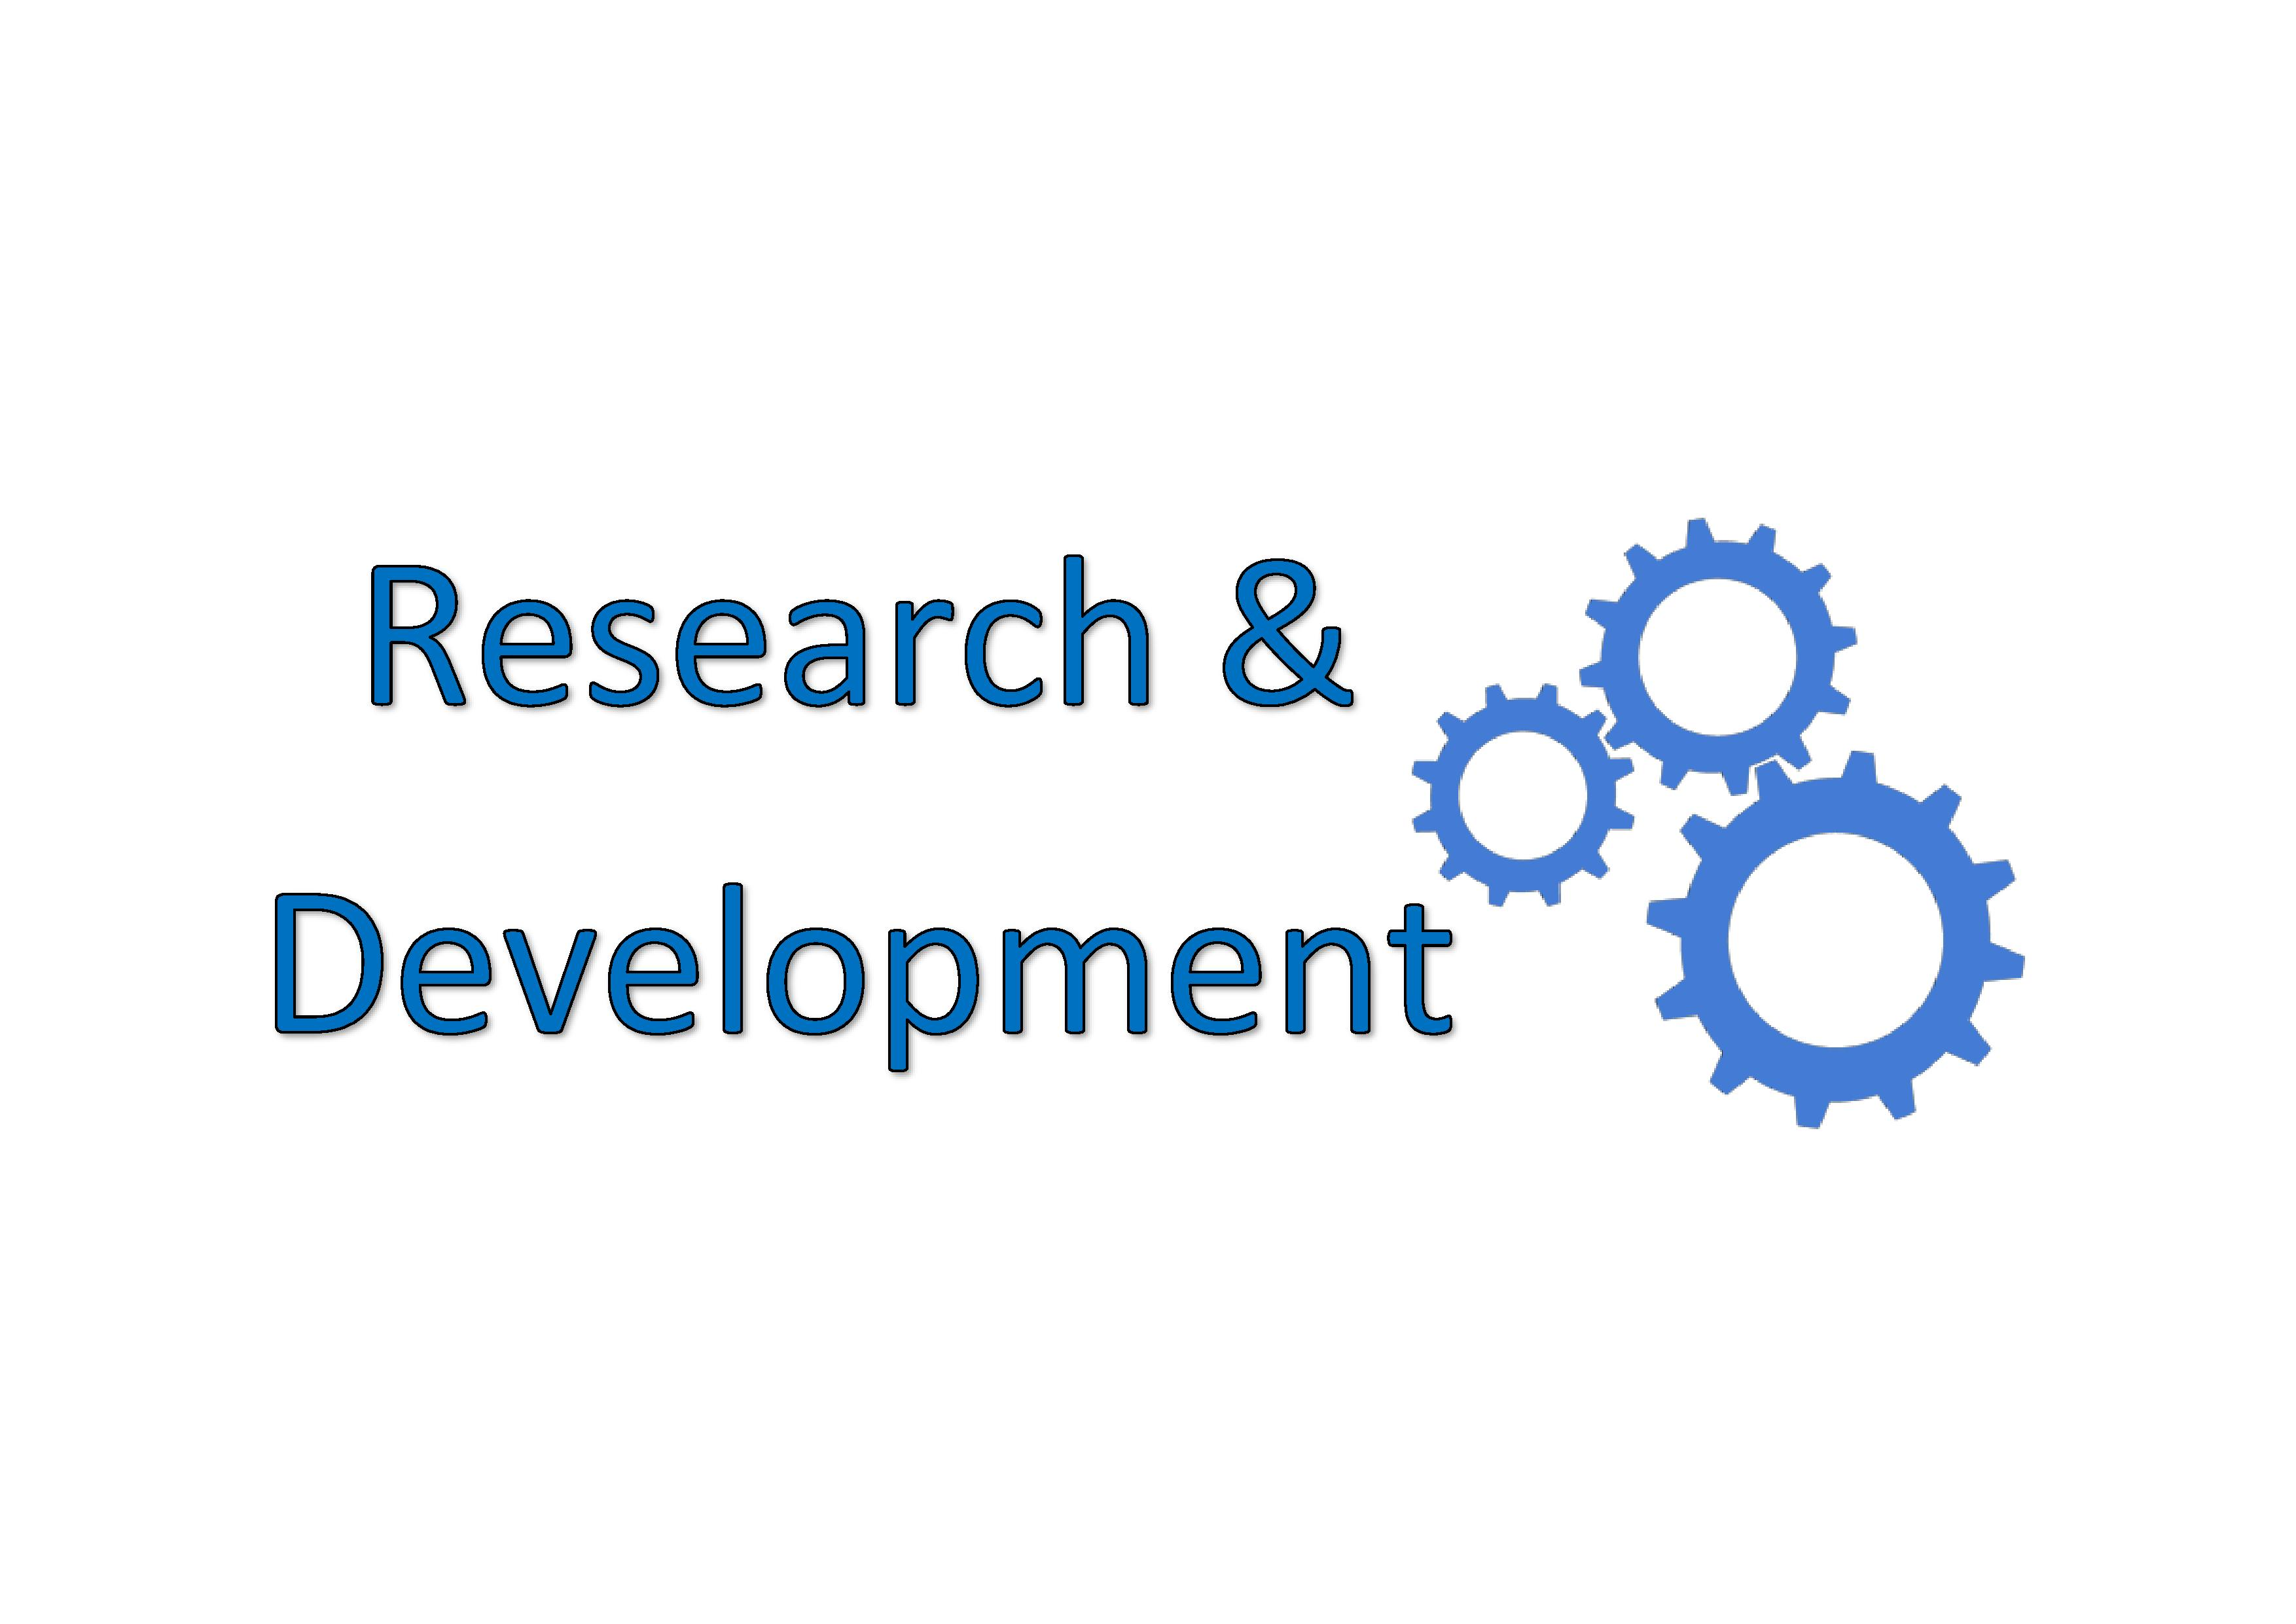 Research and development costs gaap